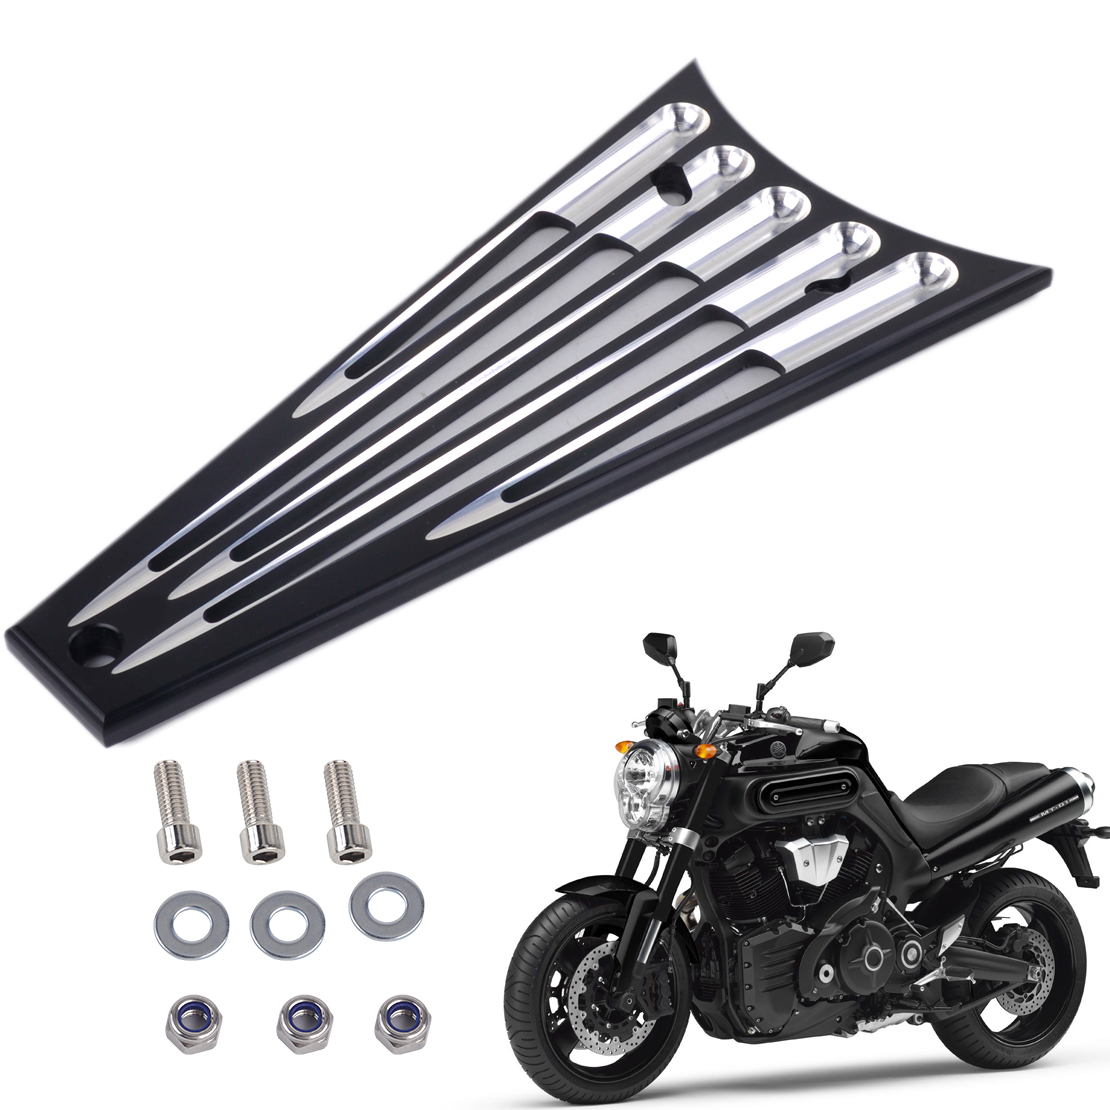 CITALL 6 Columns Billet Deep Cut Frame Grill For Harley Electra Glide Road King Road Street Glide FLHT FLHR FLTR FLHX 2009- 2013 abs hard saddlebags latch keys for harley road king electra street glide 14 18